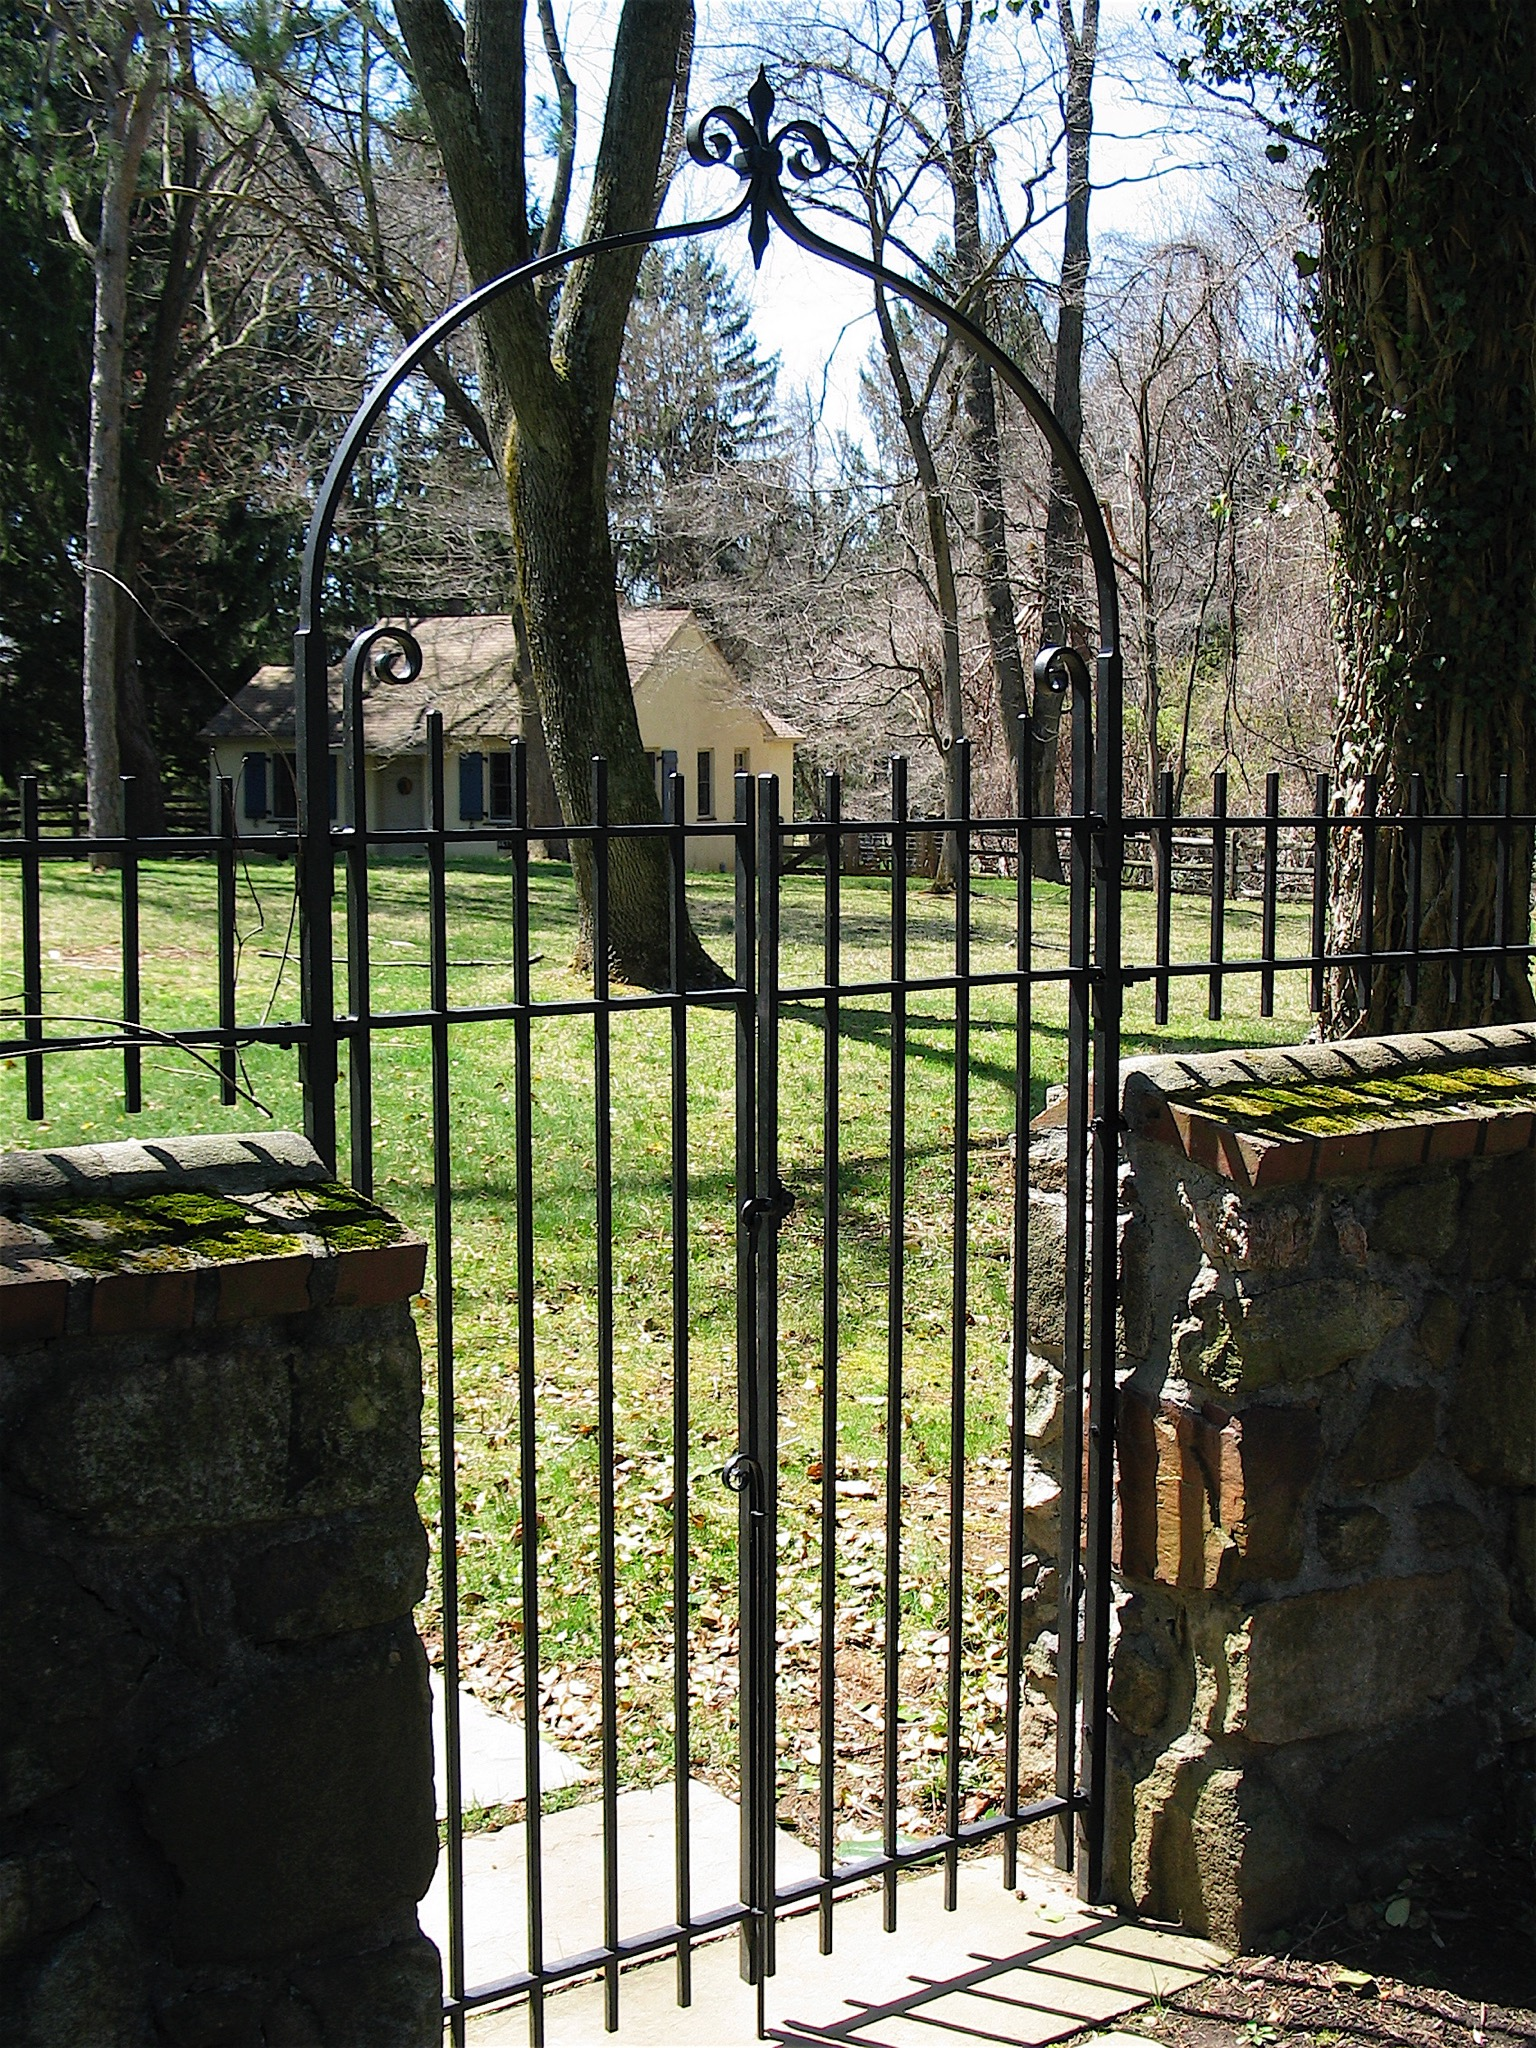 25. Simple Iron Gates and Arch